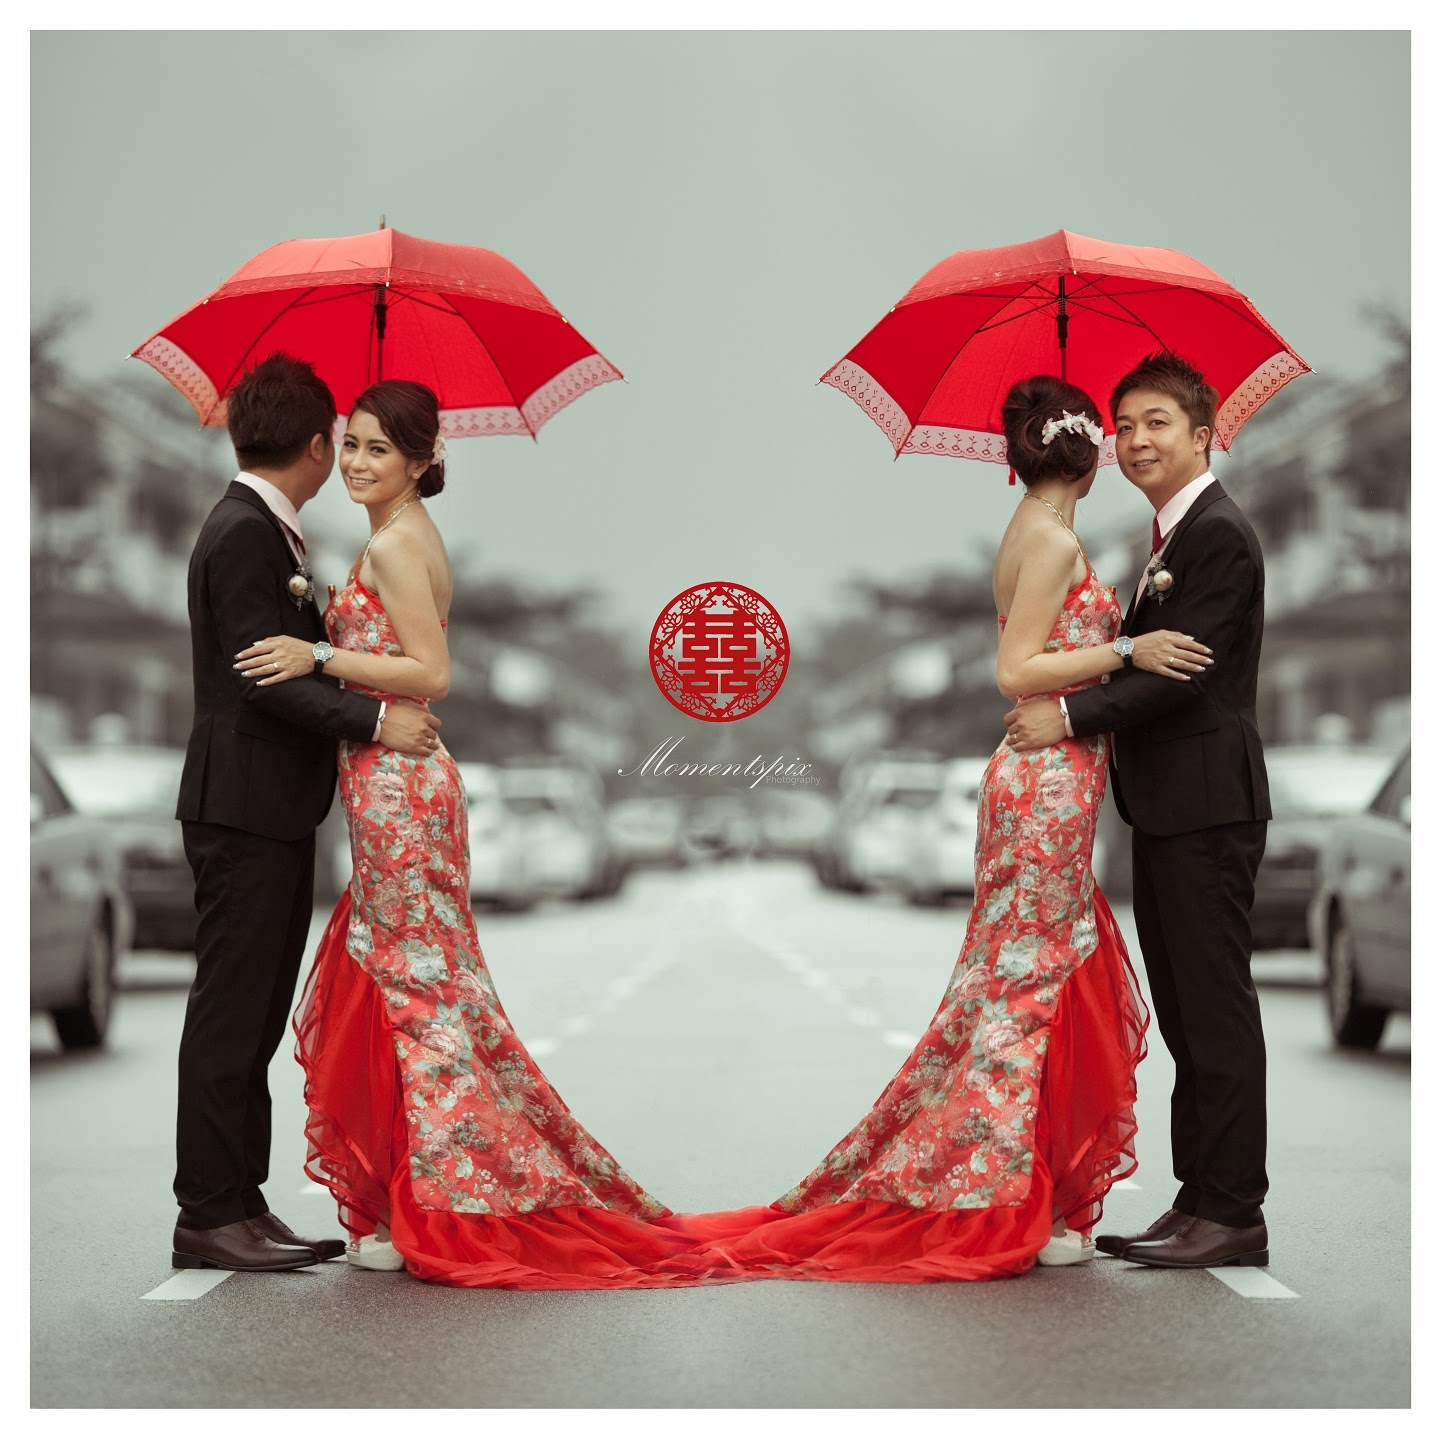 Pin By Yap Soong Dinn On Wedding Photo Inspiration Pinterest Weddings